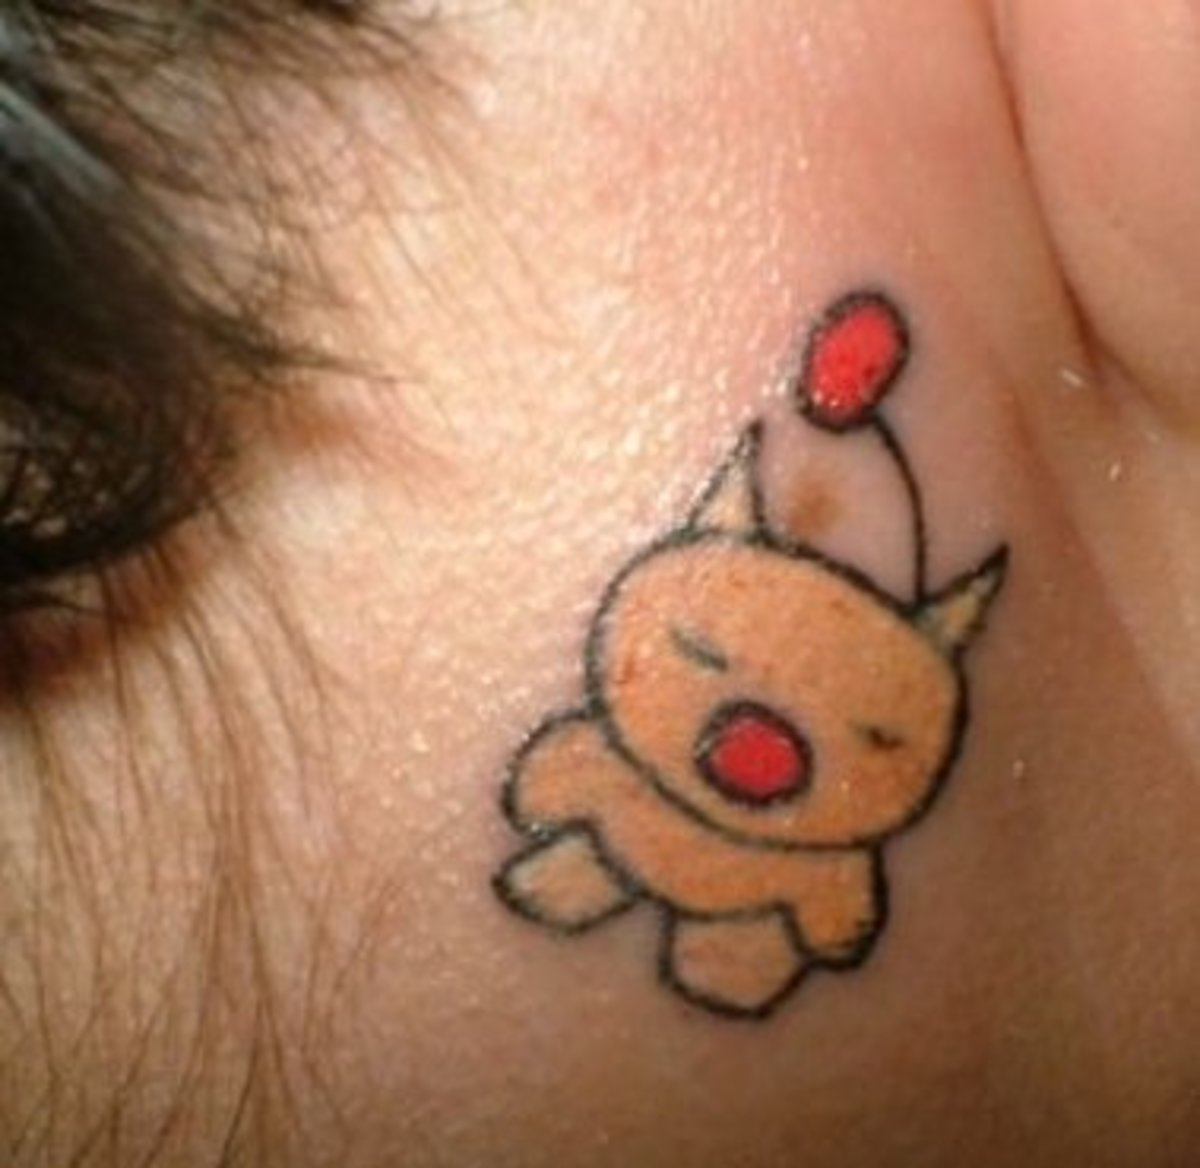 a little animal tattooed behind a person's ear